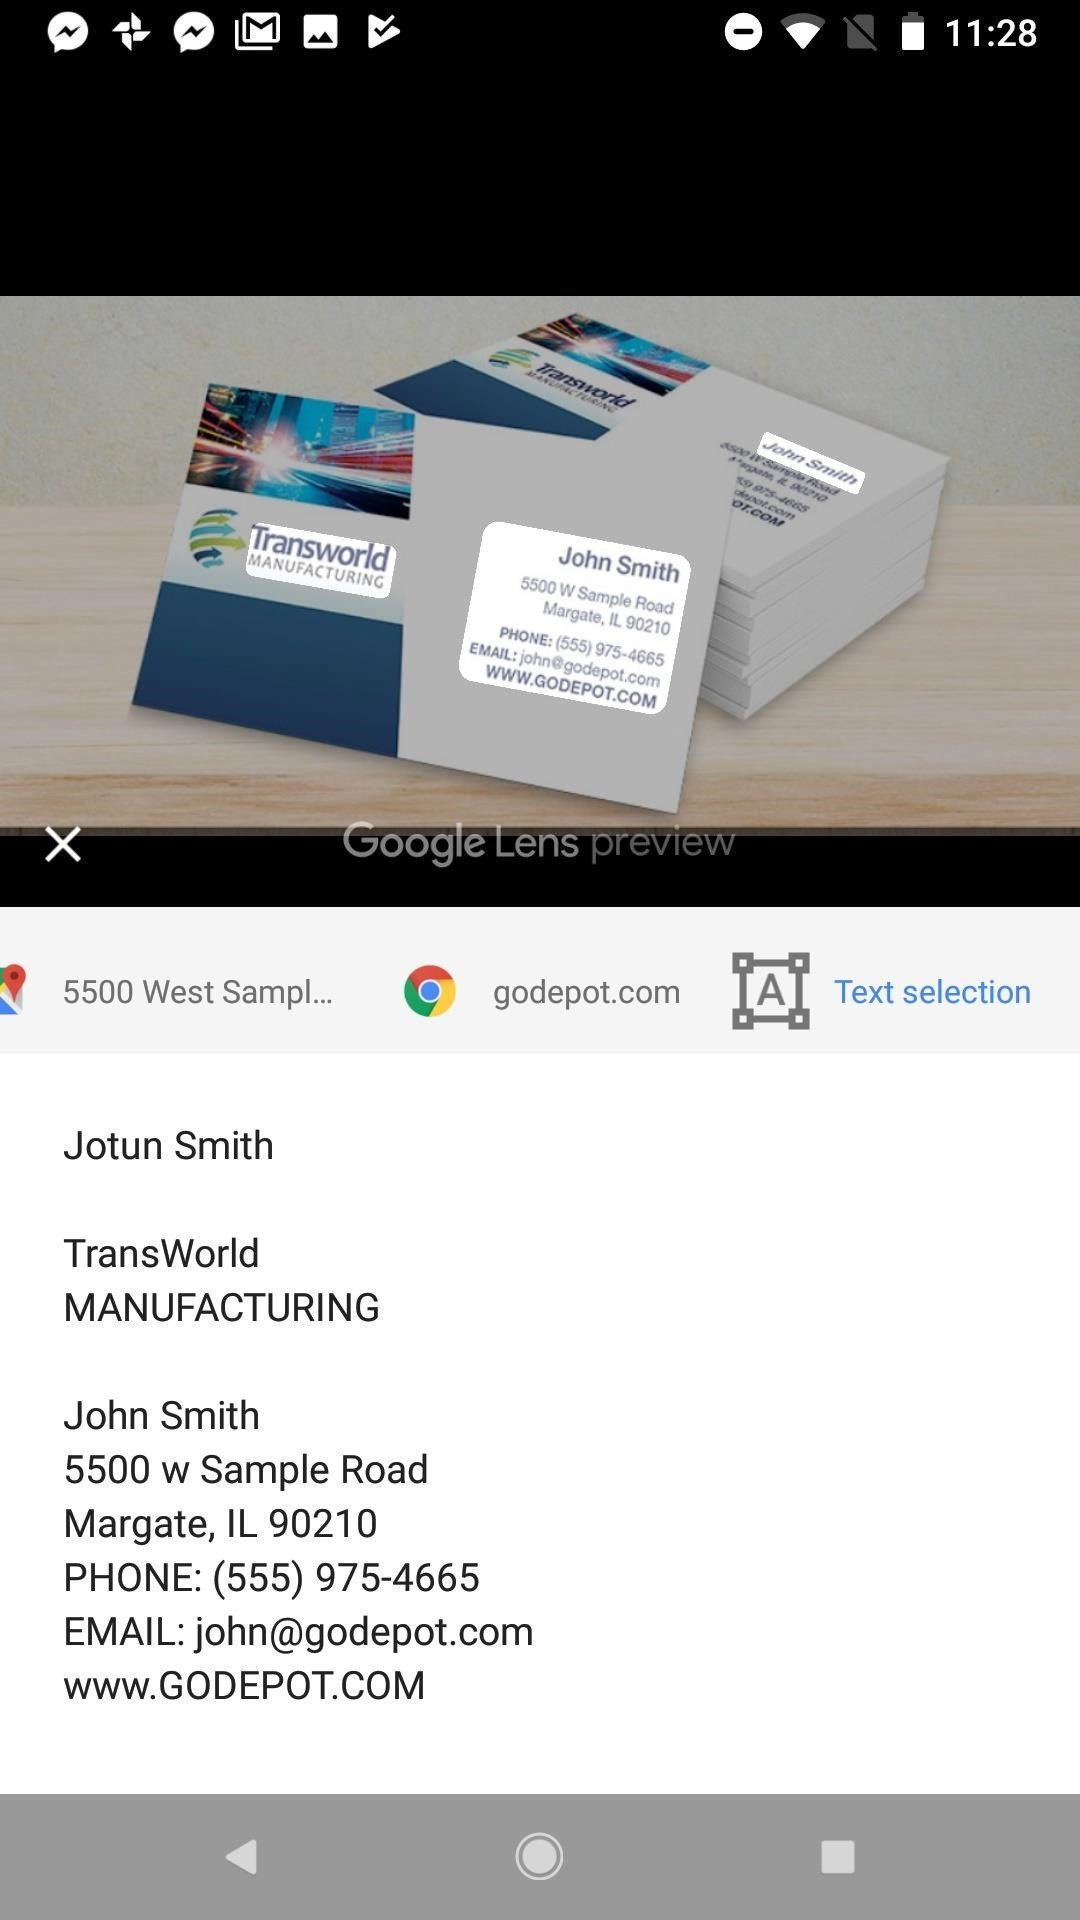 Google photos 101 how to use google lens to save contact info from dont miss how to use googles reverse image search on your android device colourmoves